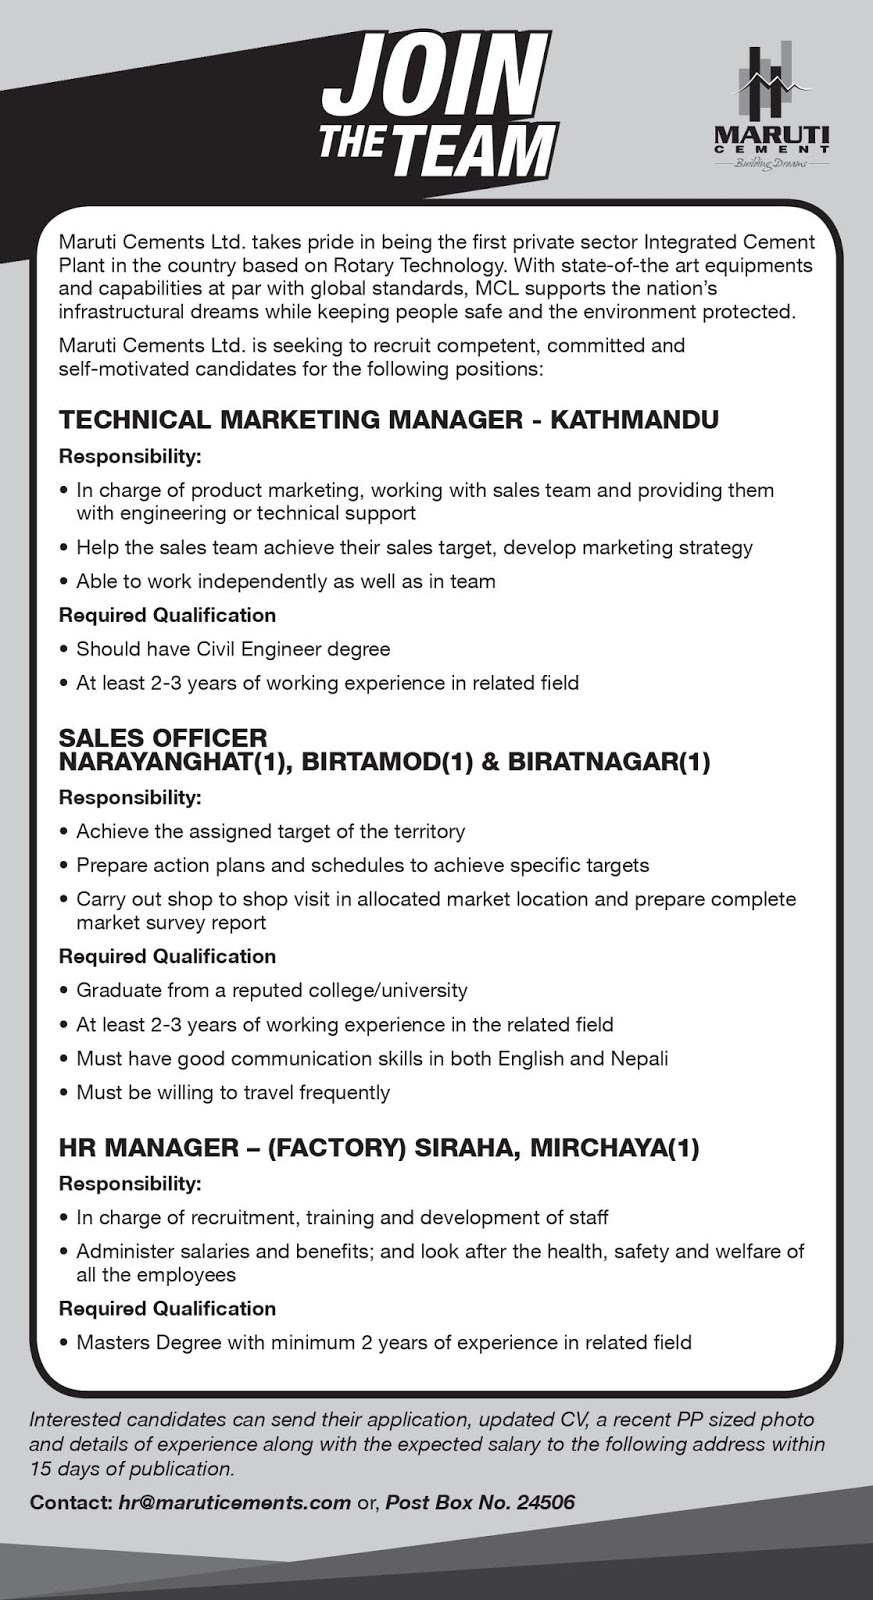 Maruti Cement Pvt. Ltd. Announced Vacancy for Technical Marketing Manager, Sales Officer and HR Manager Post